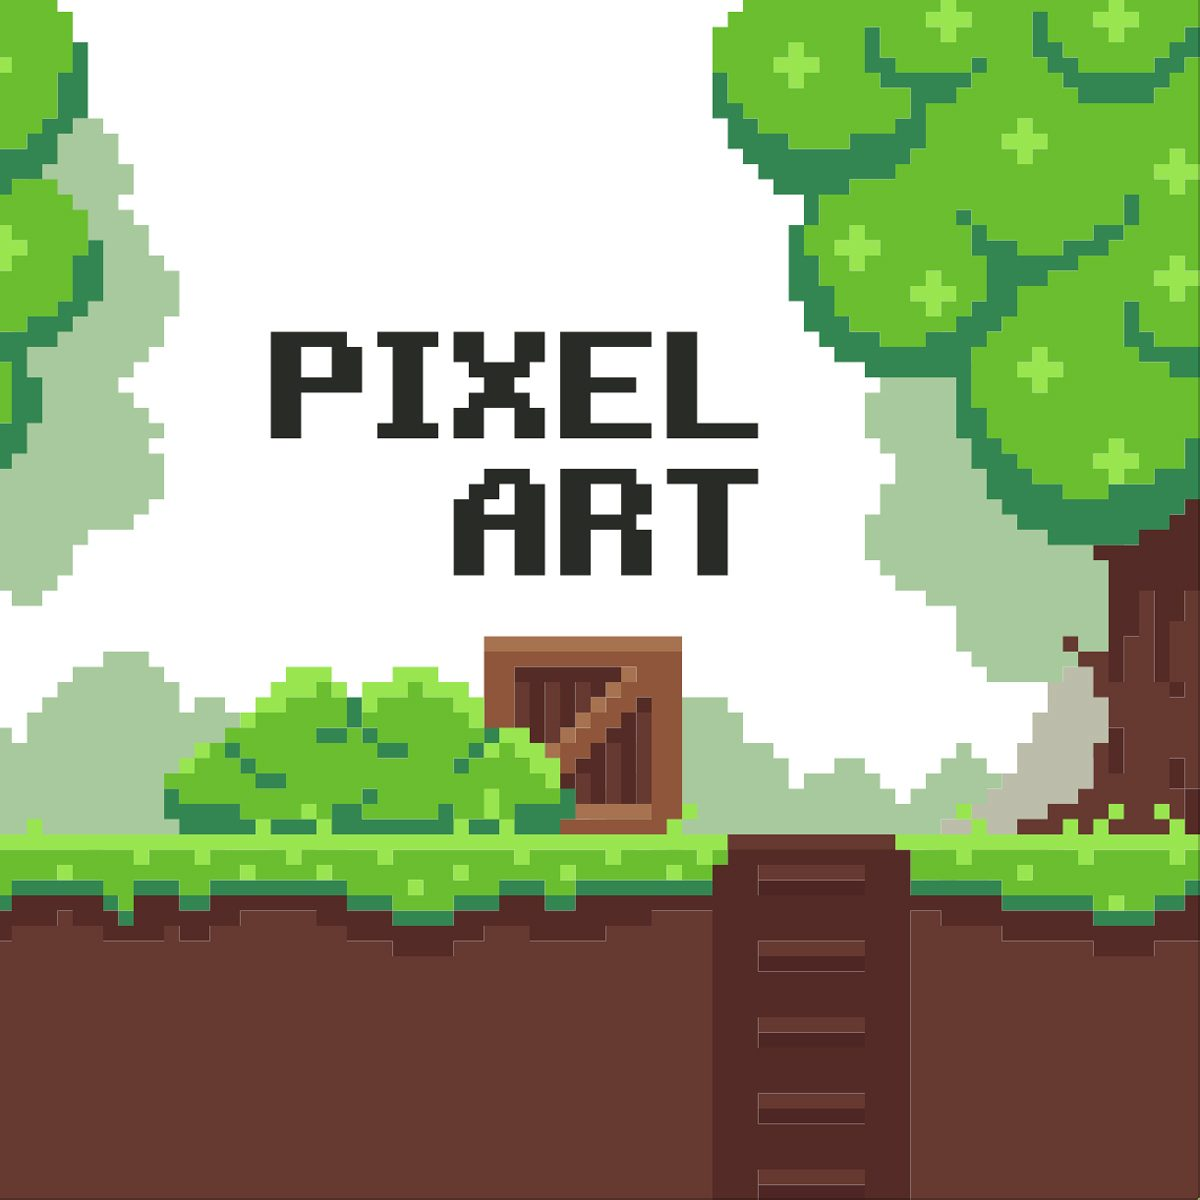 Pixel Art Decorations